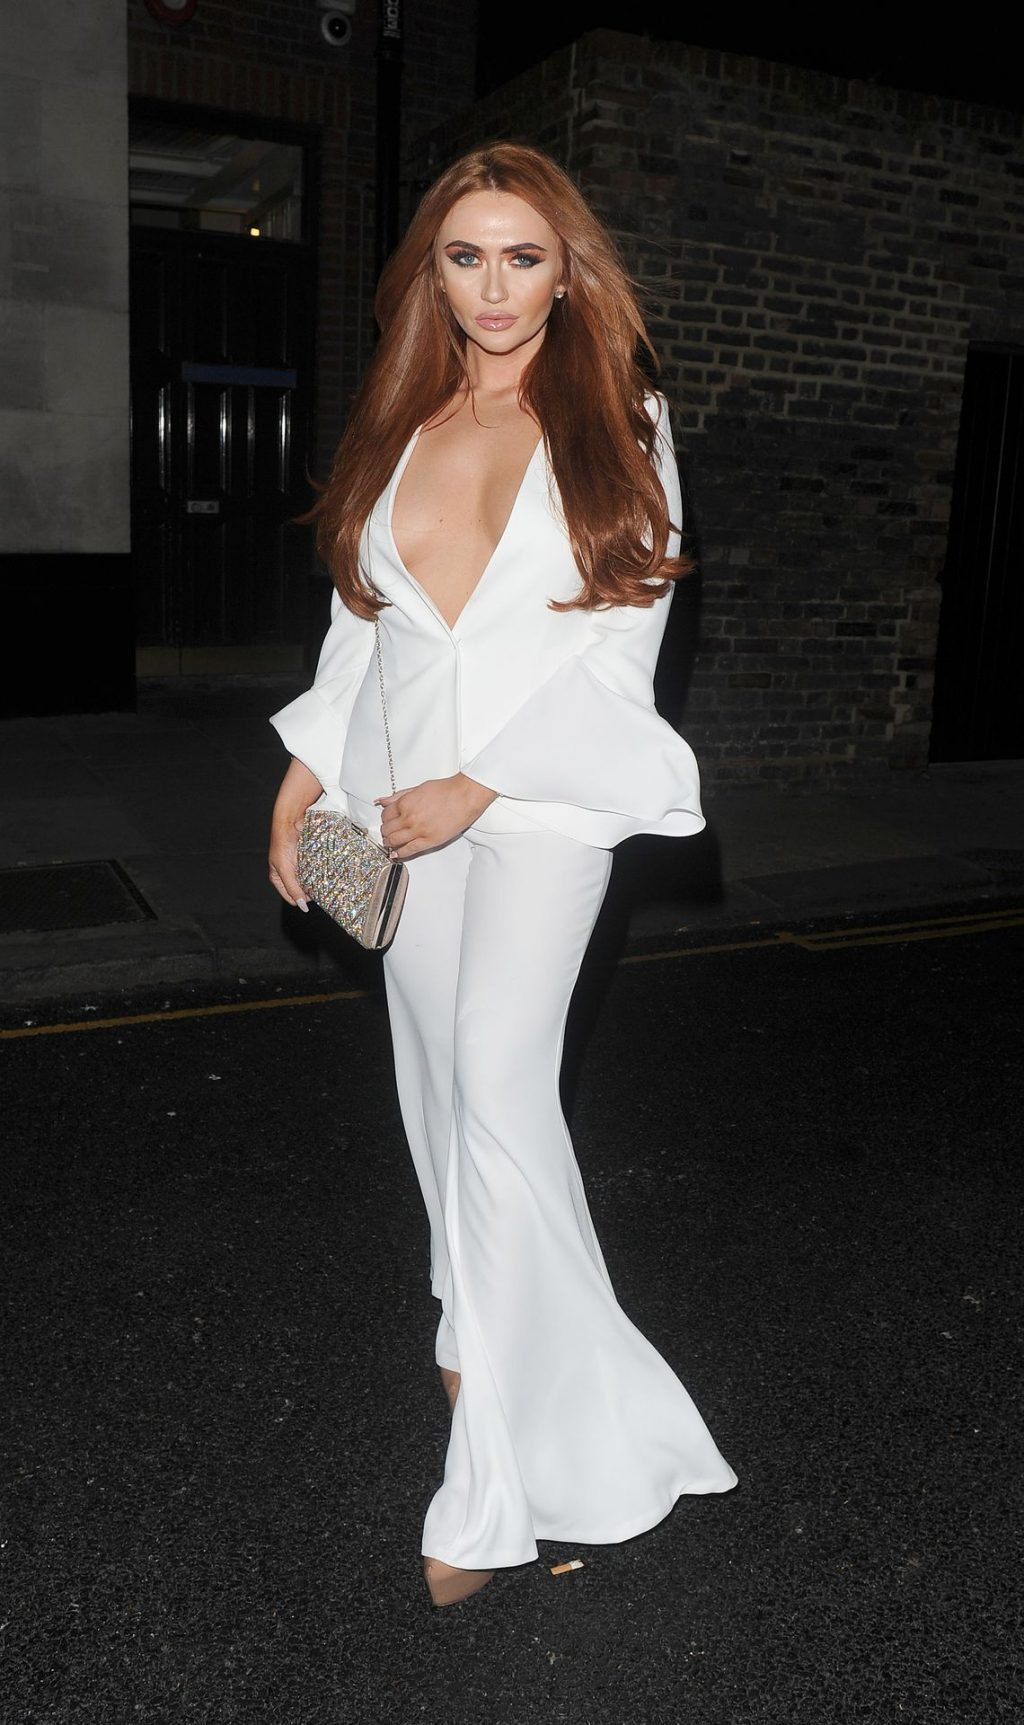 Charlotte Dawson Shows Off Her Tits in London (6 Photos)